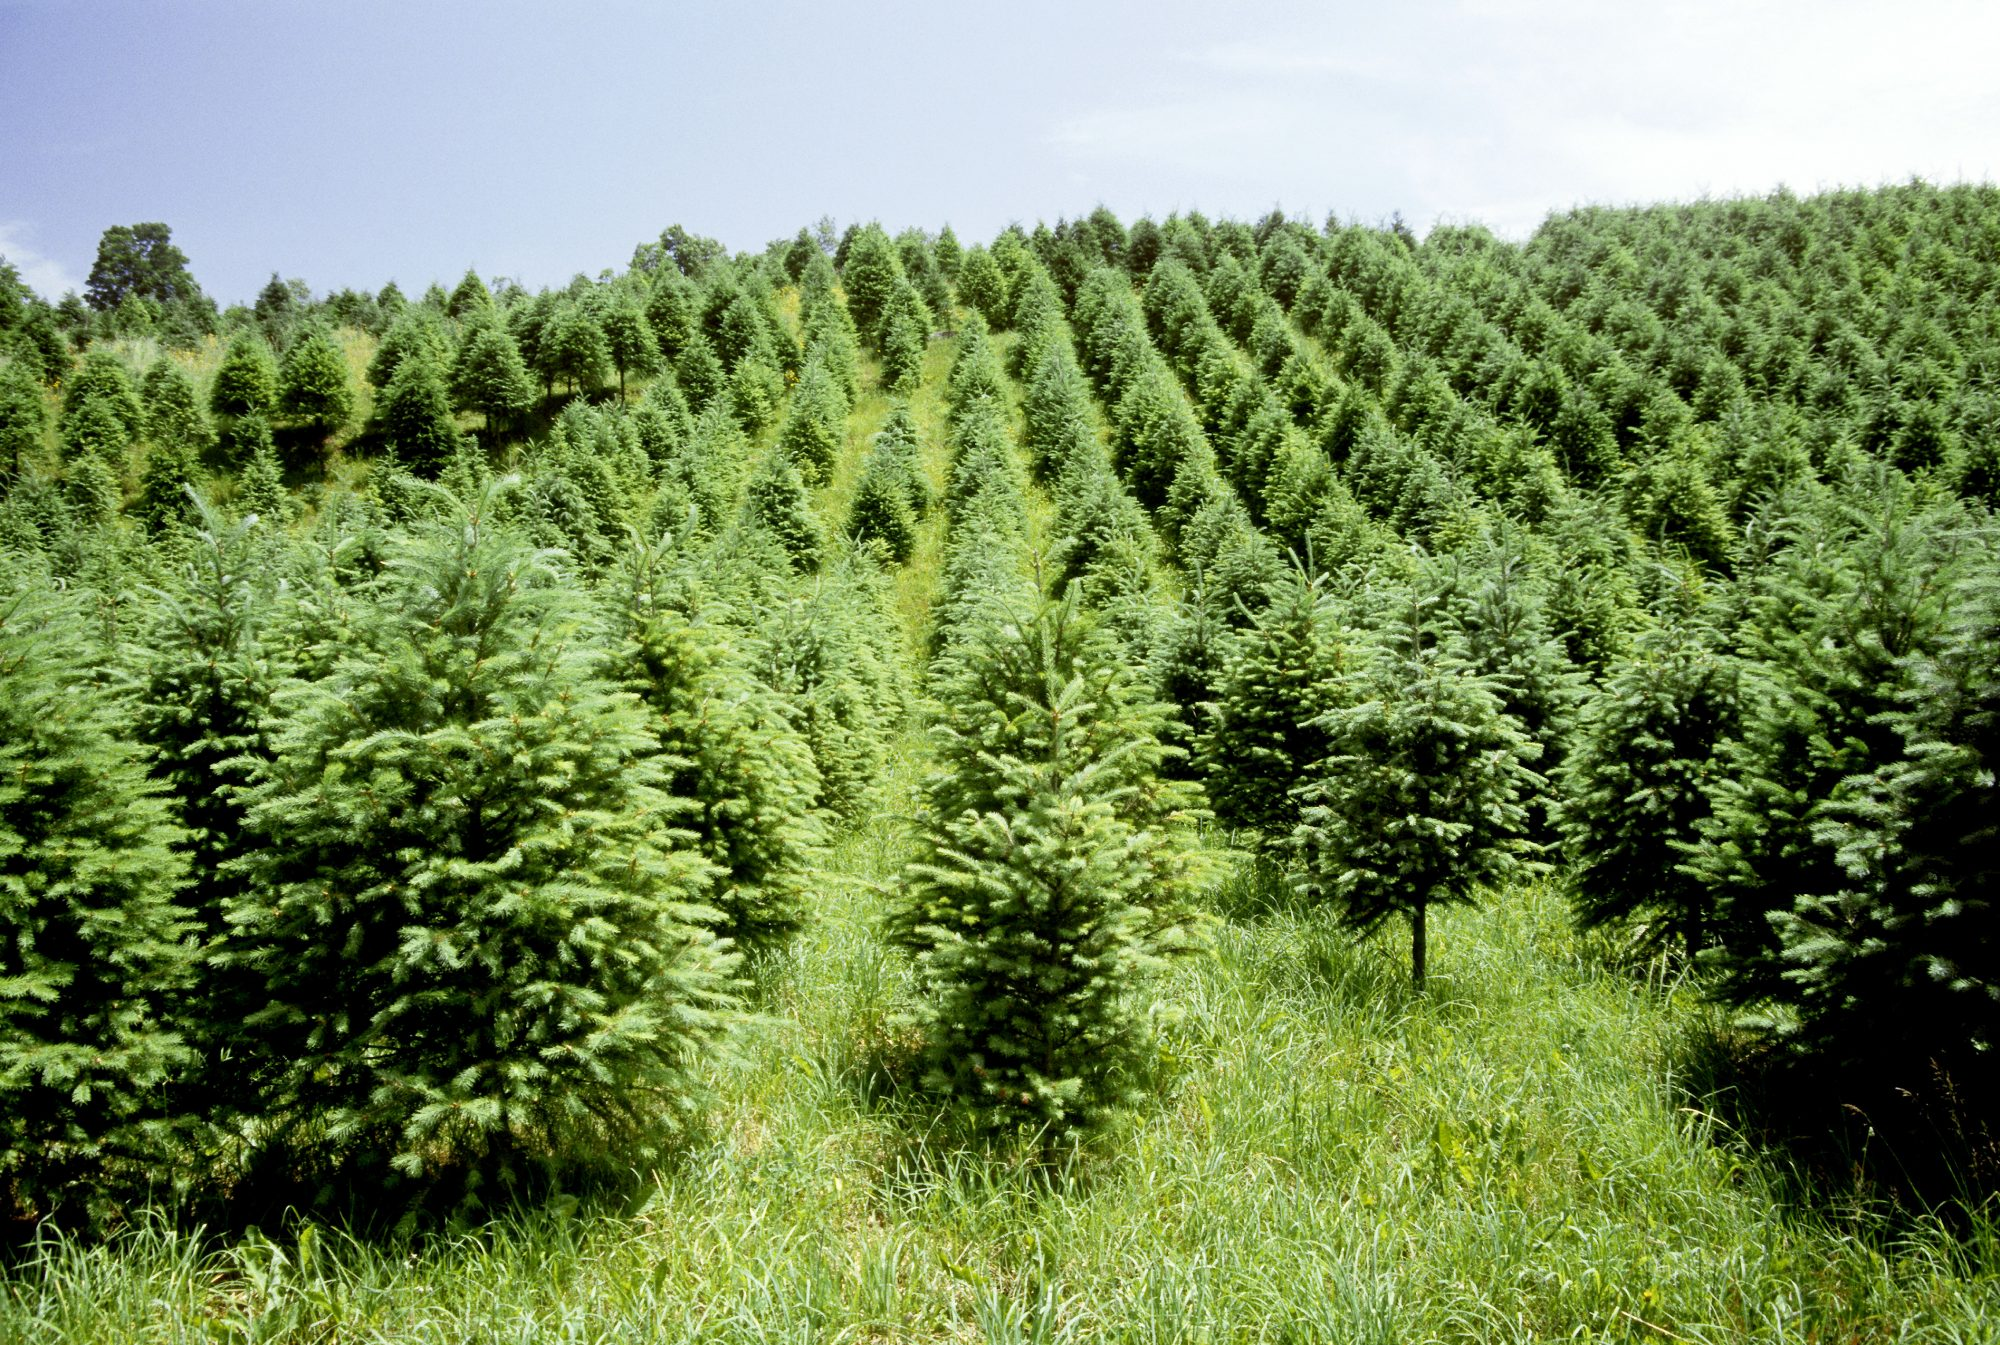 A Christmas tree farm in the Catskill mountains, New York.